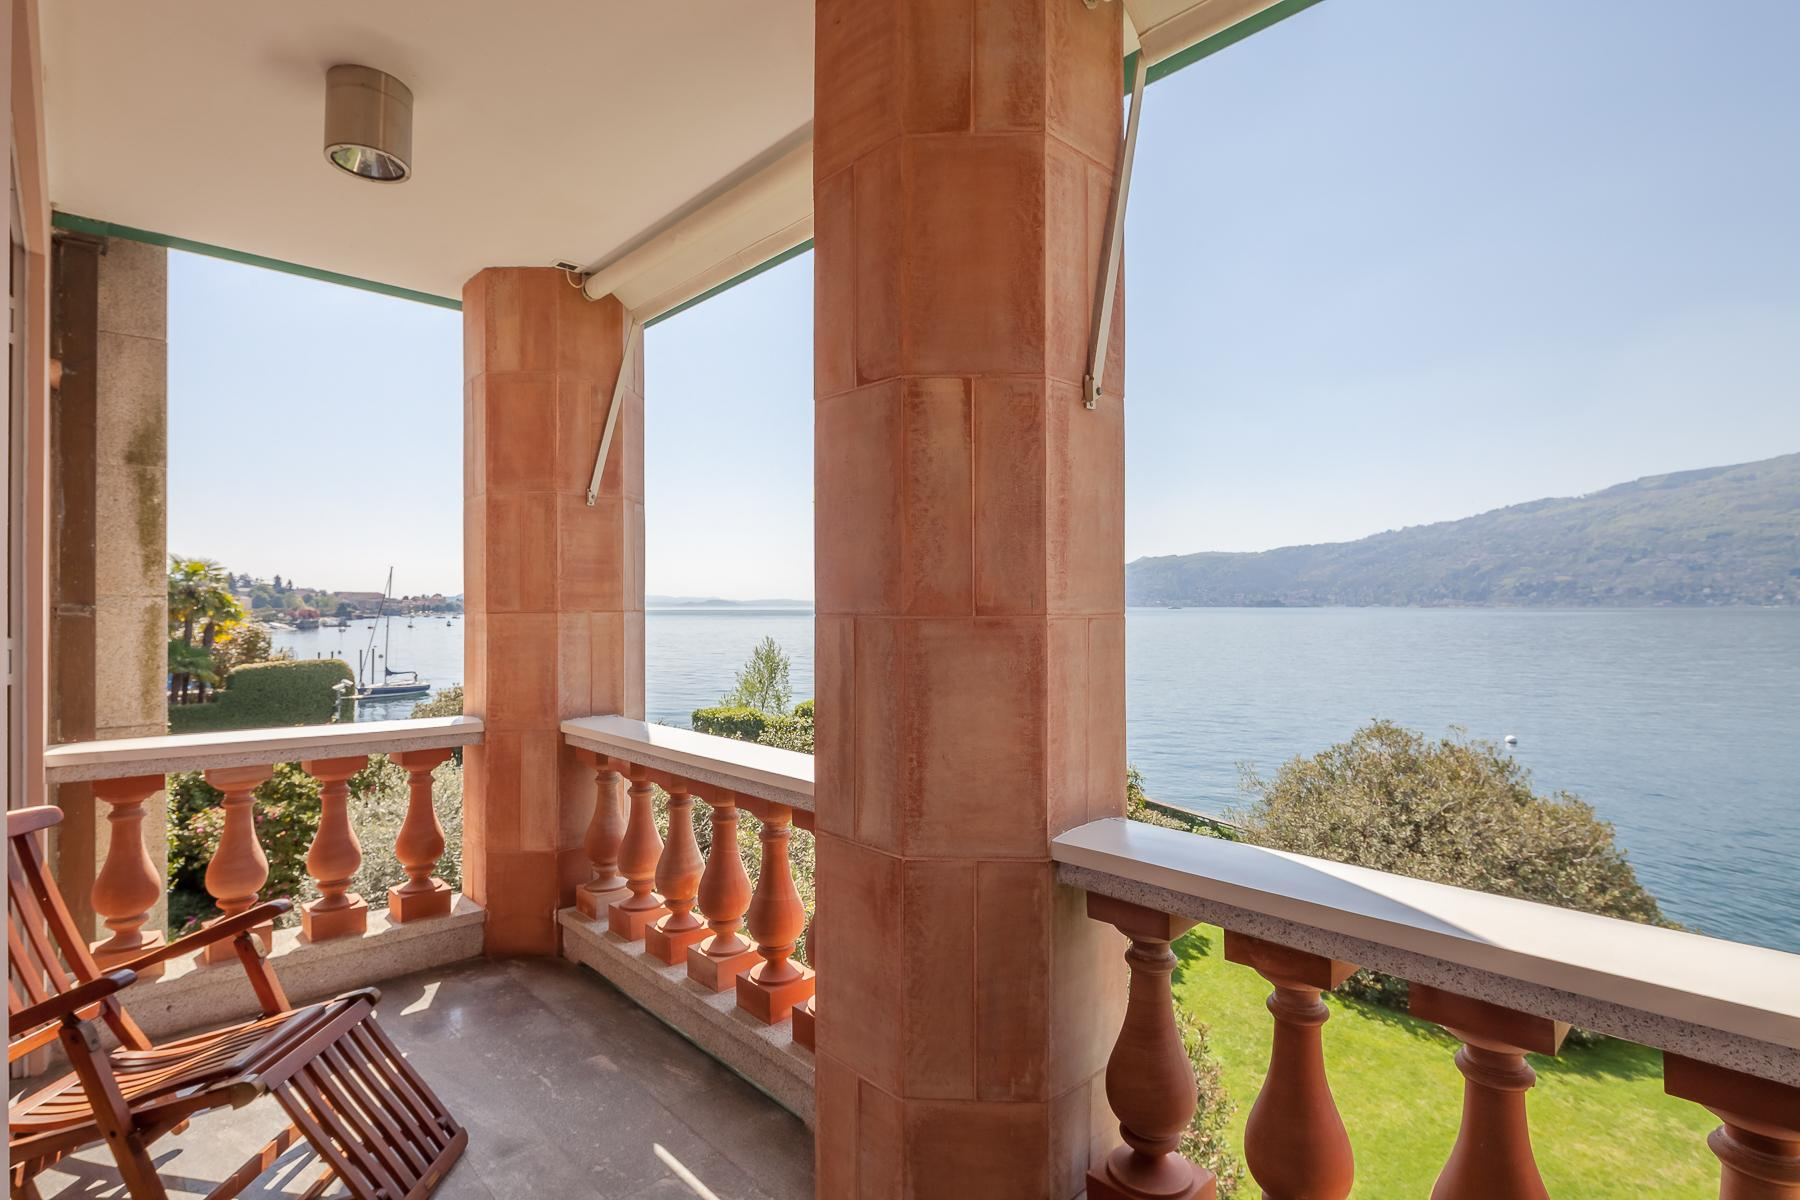 Villa with access to the lake designed and built by the architect Aldo Rossi - 21